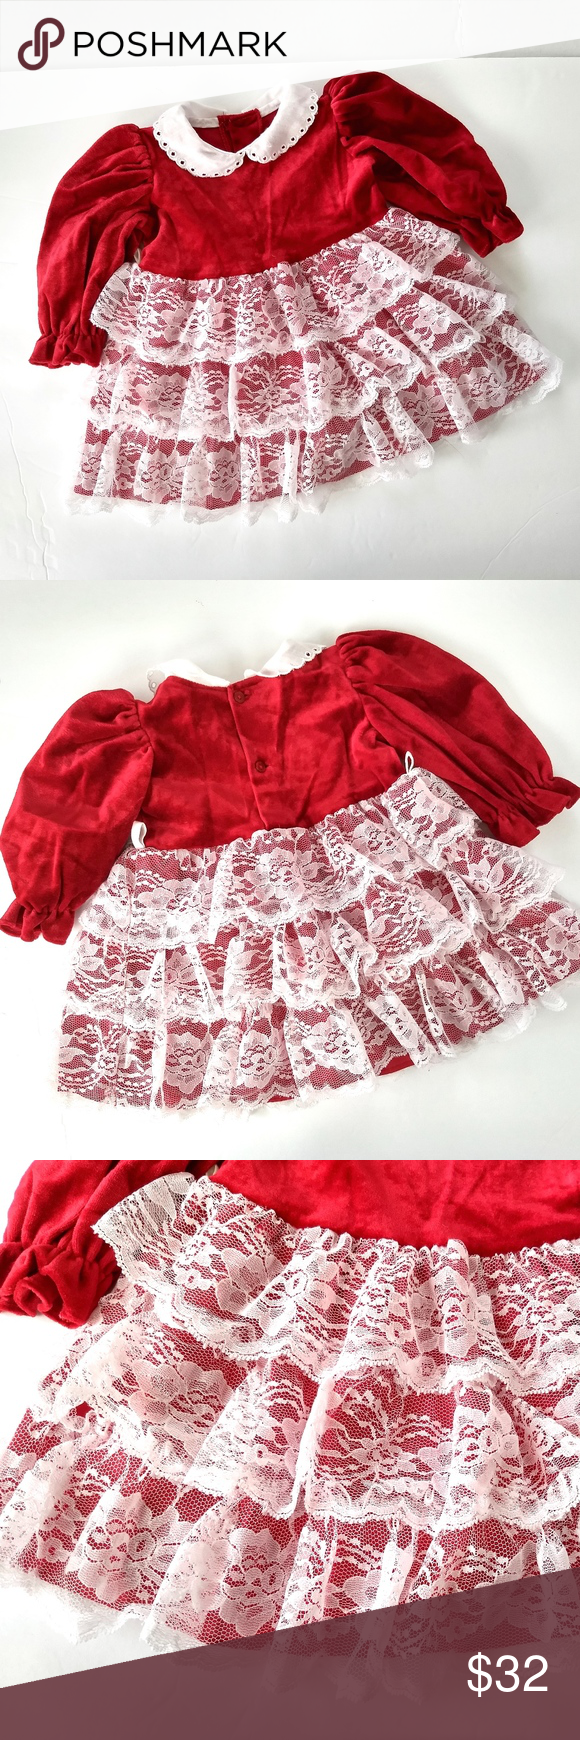 b75da409cb9 Vintage Toddler 18 mo Christmas Dress Red Velvet Vintage Toddler Girls Christmas  Dress Size 18 months Color  Red and White Velvet Top. Tiered Lace Skirt.